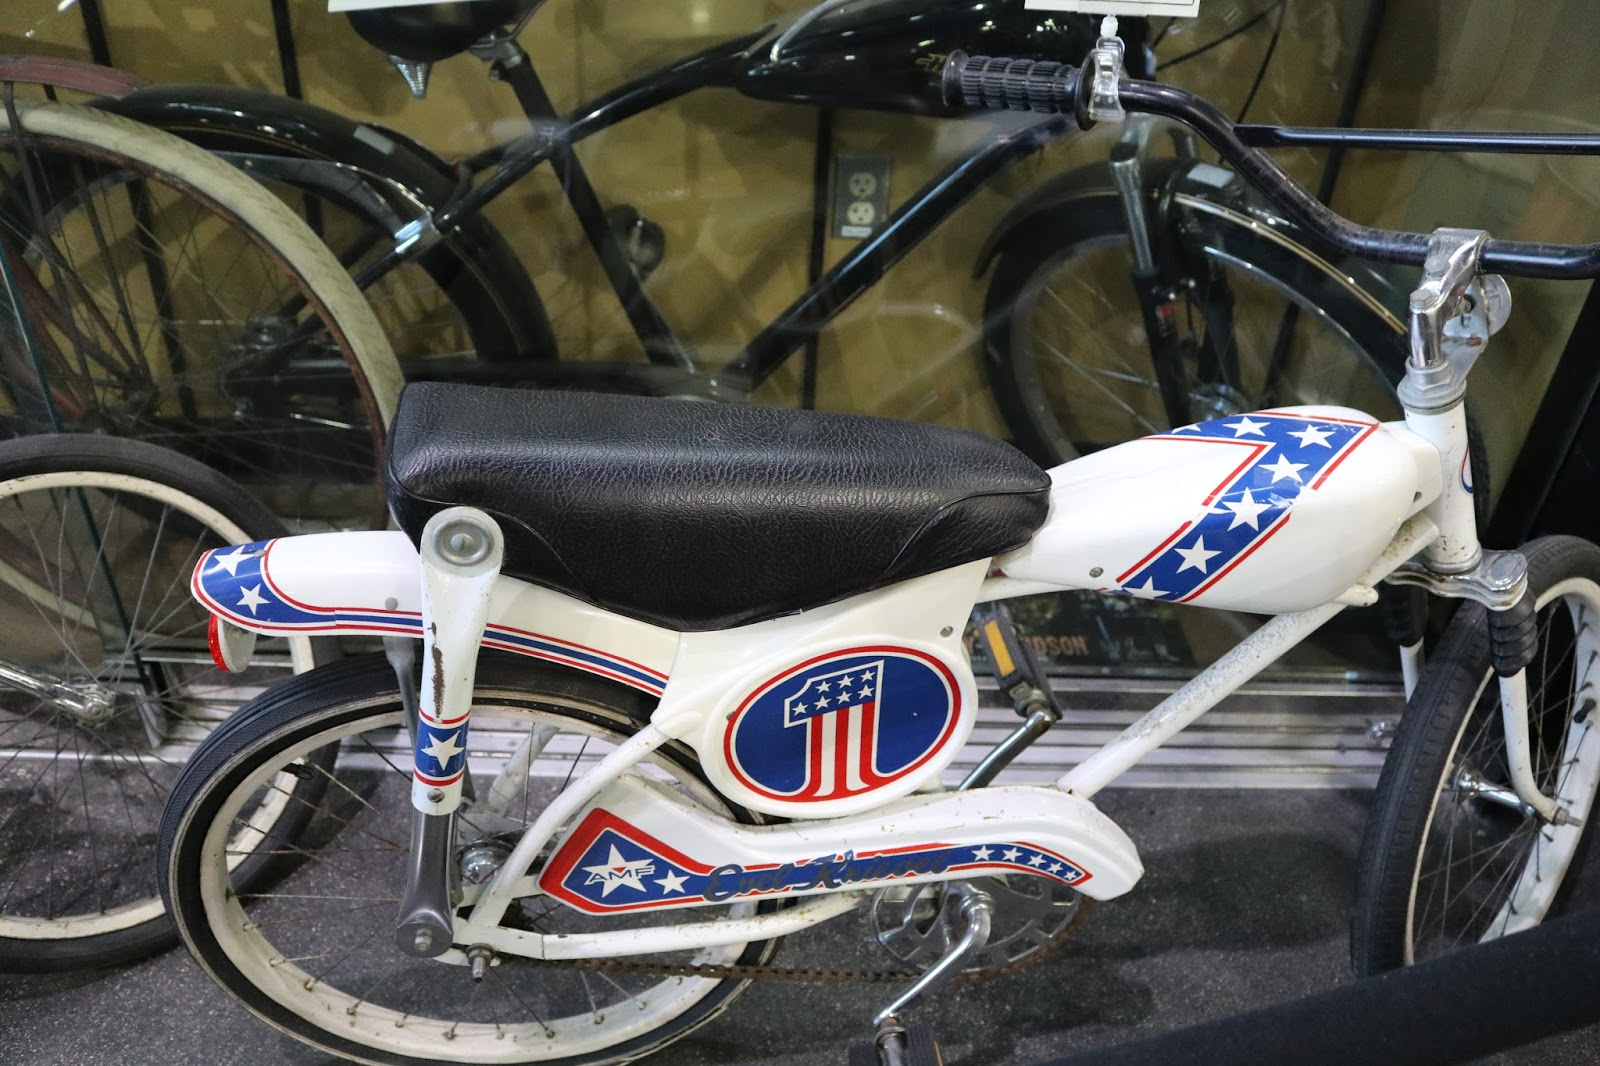 Famous Evel Knievel Bike At Auction: OldMotoDude: 1970's Evel Knievel Bicycle On Display At The